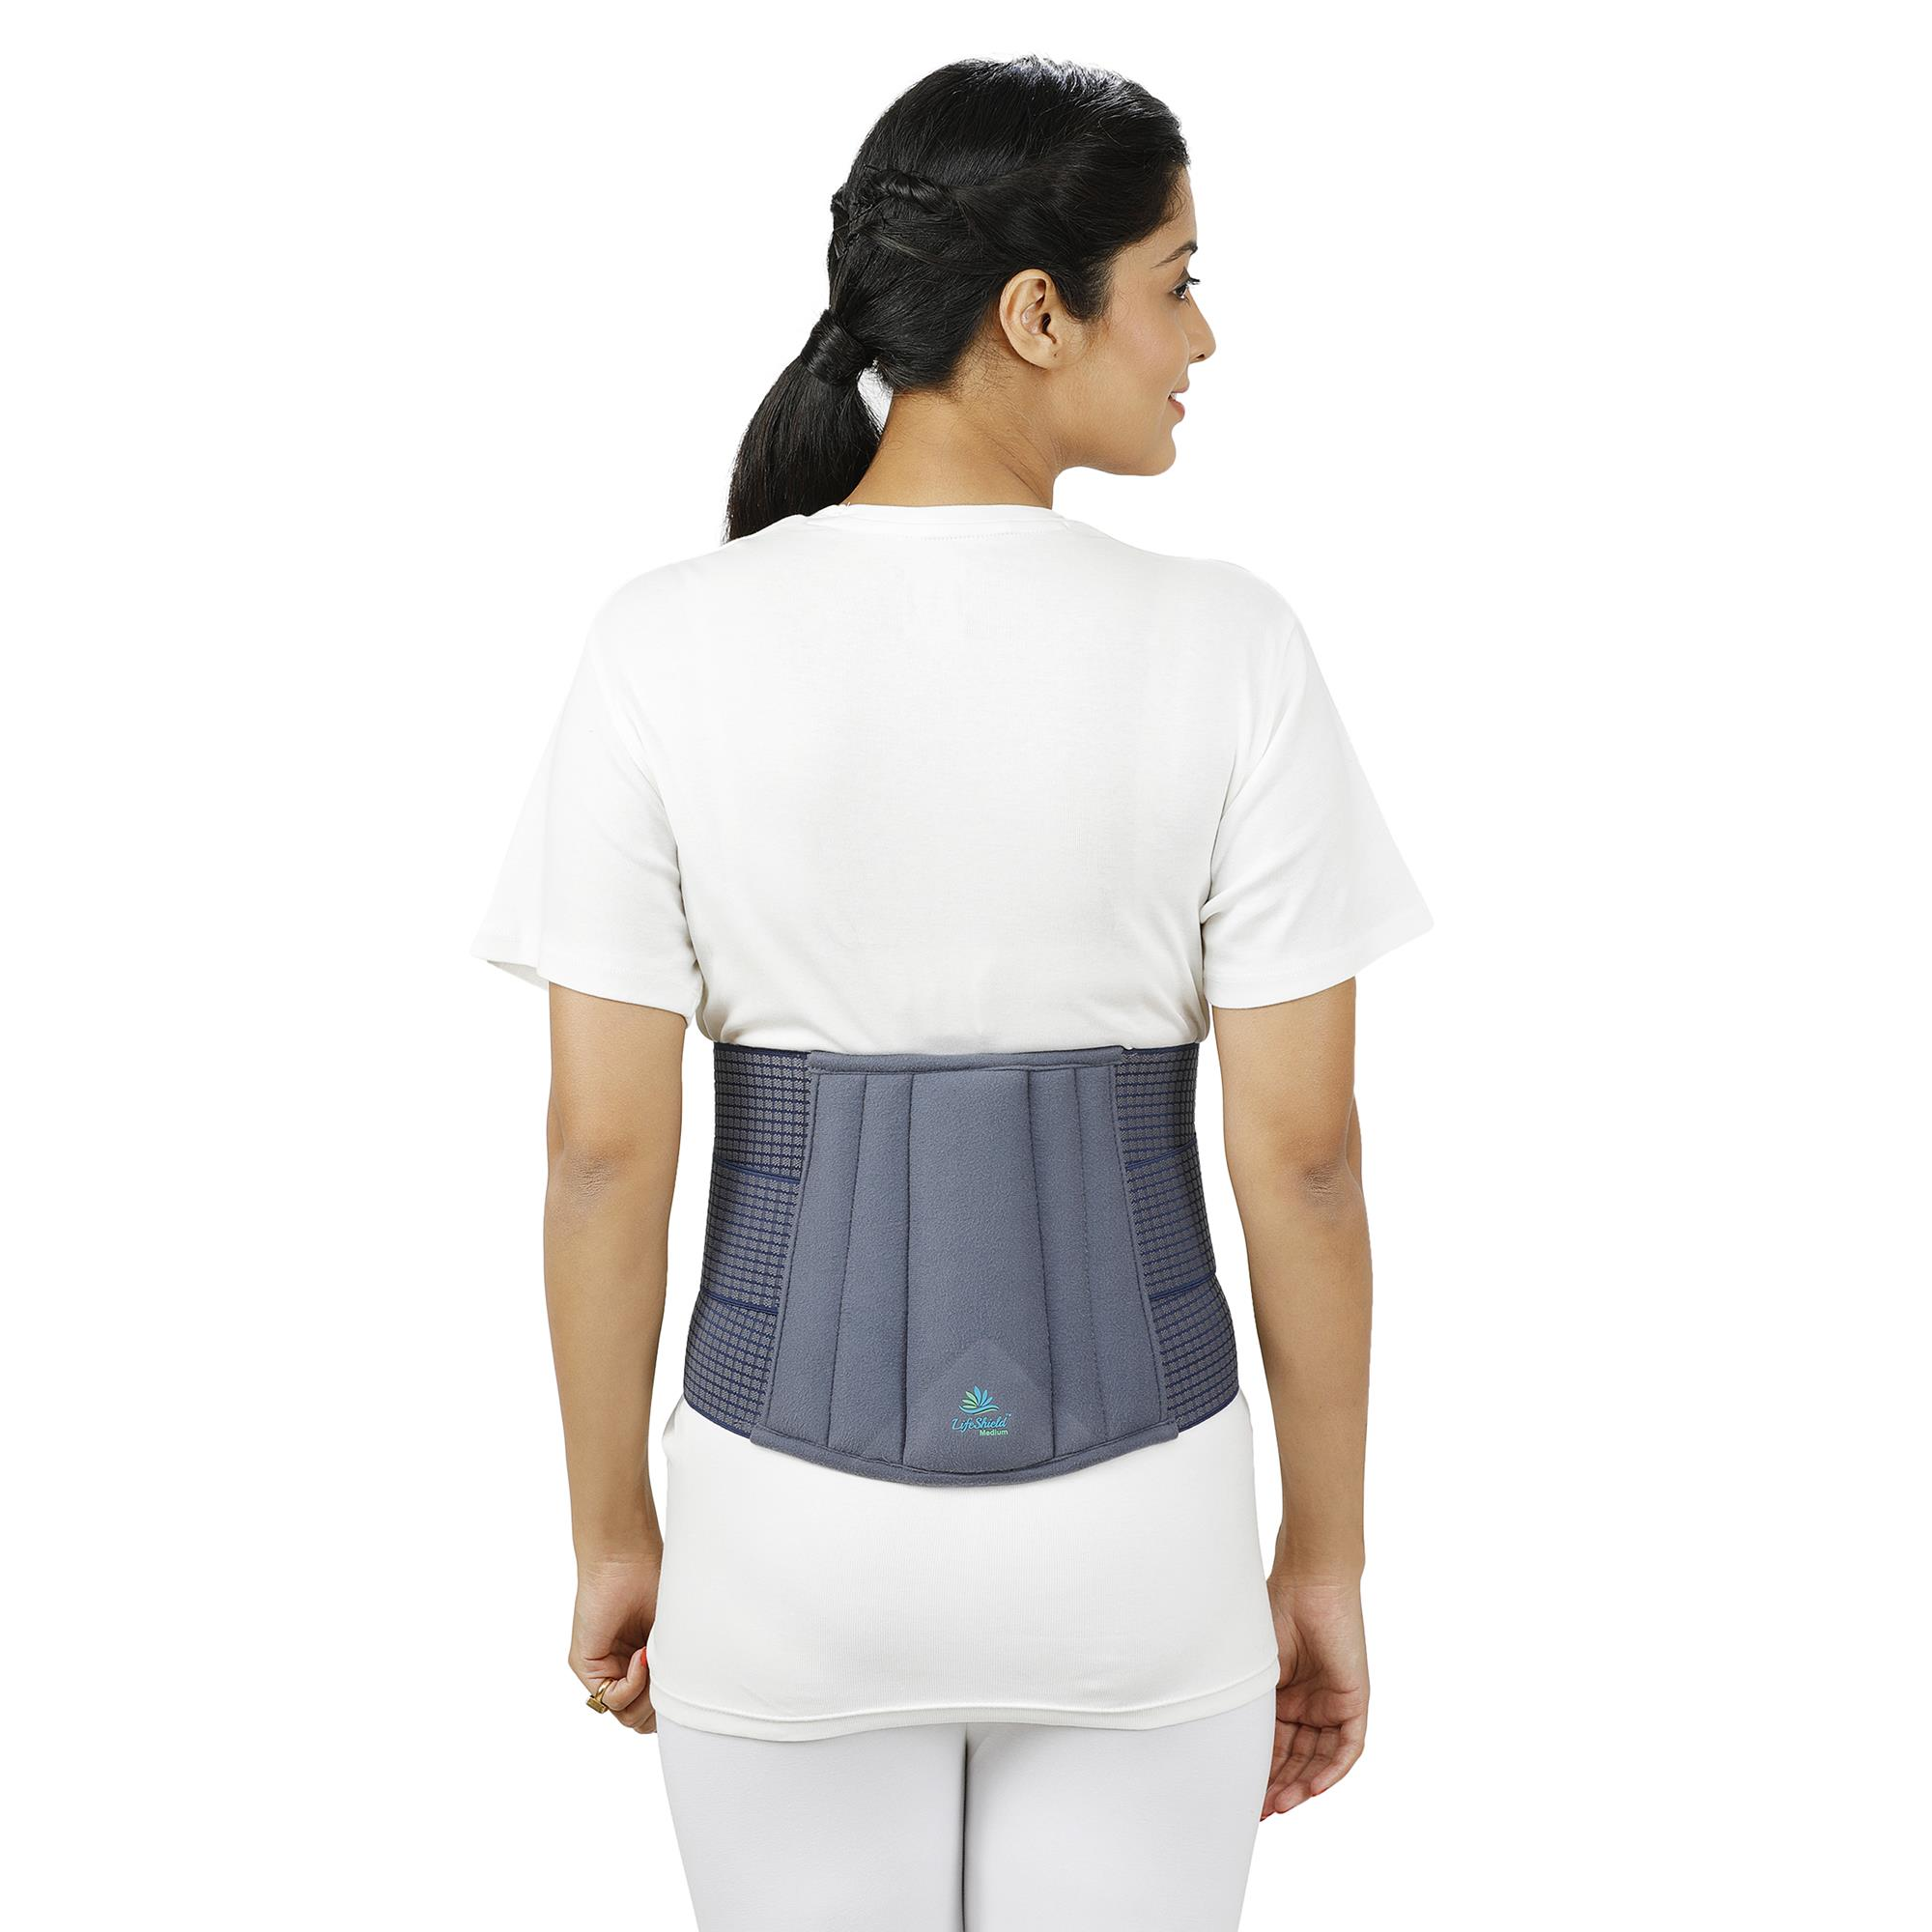 Lifeshield Lumbo Sacral Support With Soft Padded Foam: Provides Back Support To Lumber Region (3X Large)